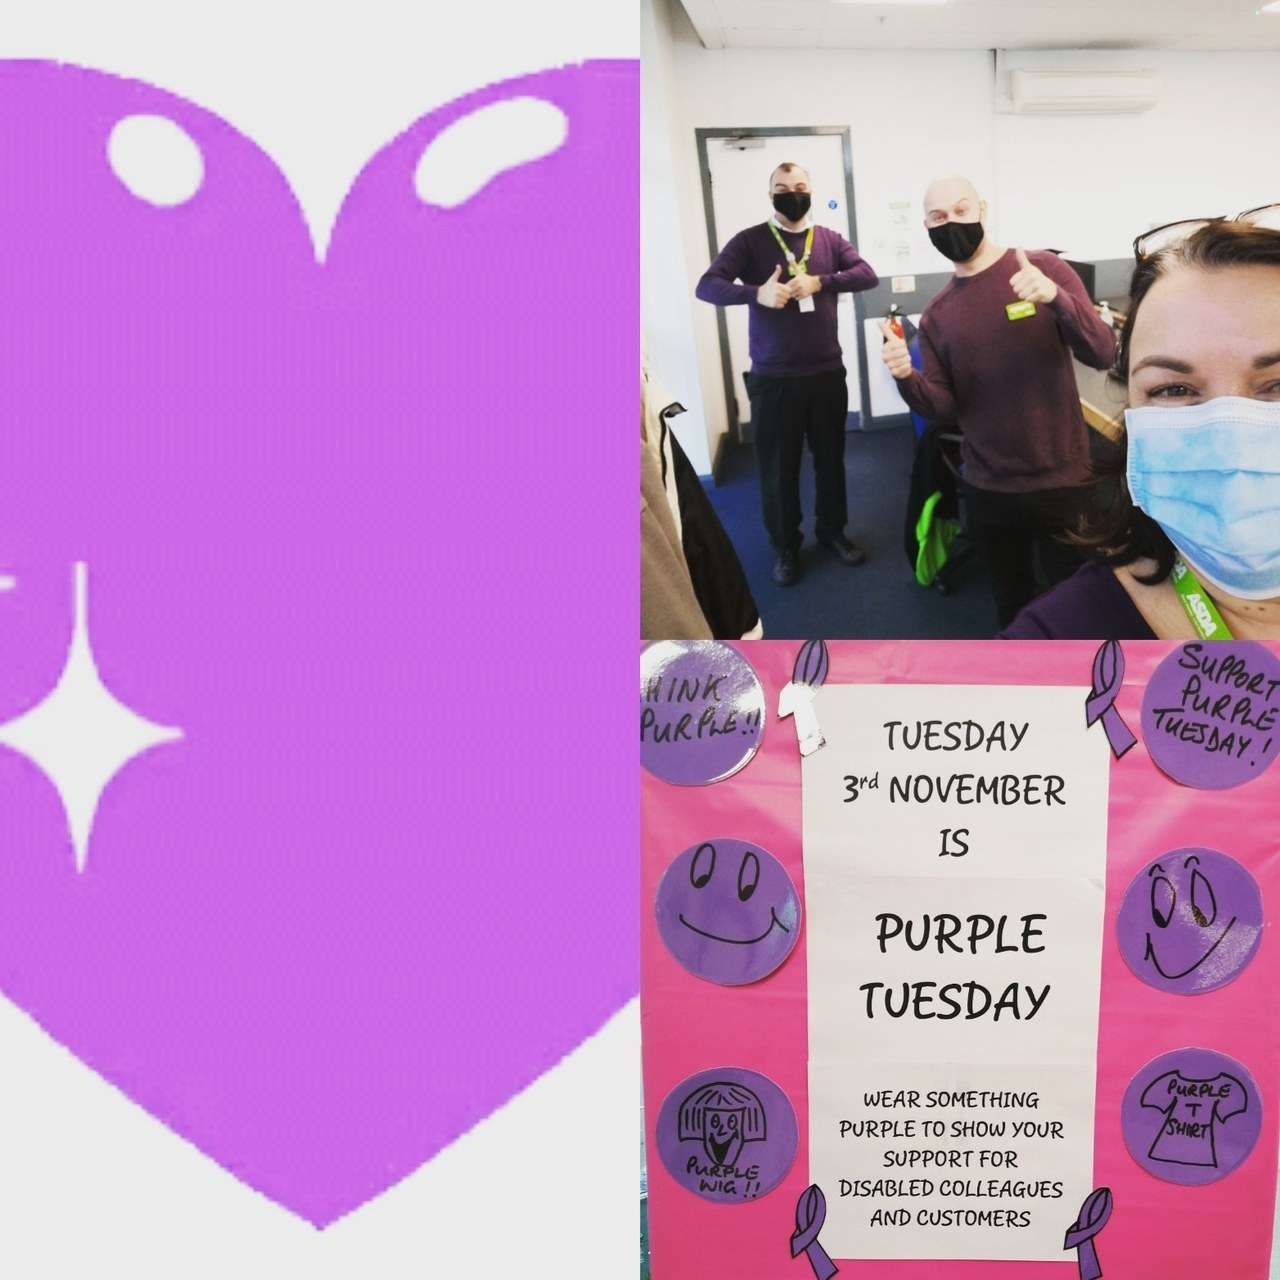 Clayton Green supporting Purple Tuesday  | Asda Clayton Green